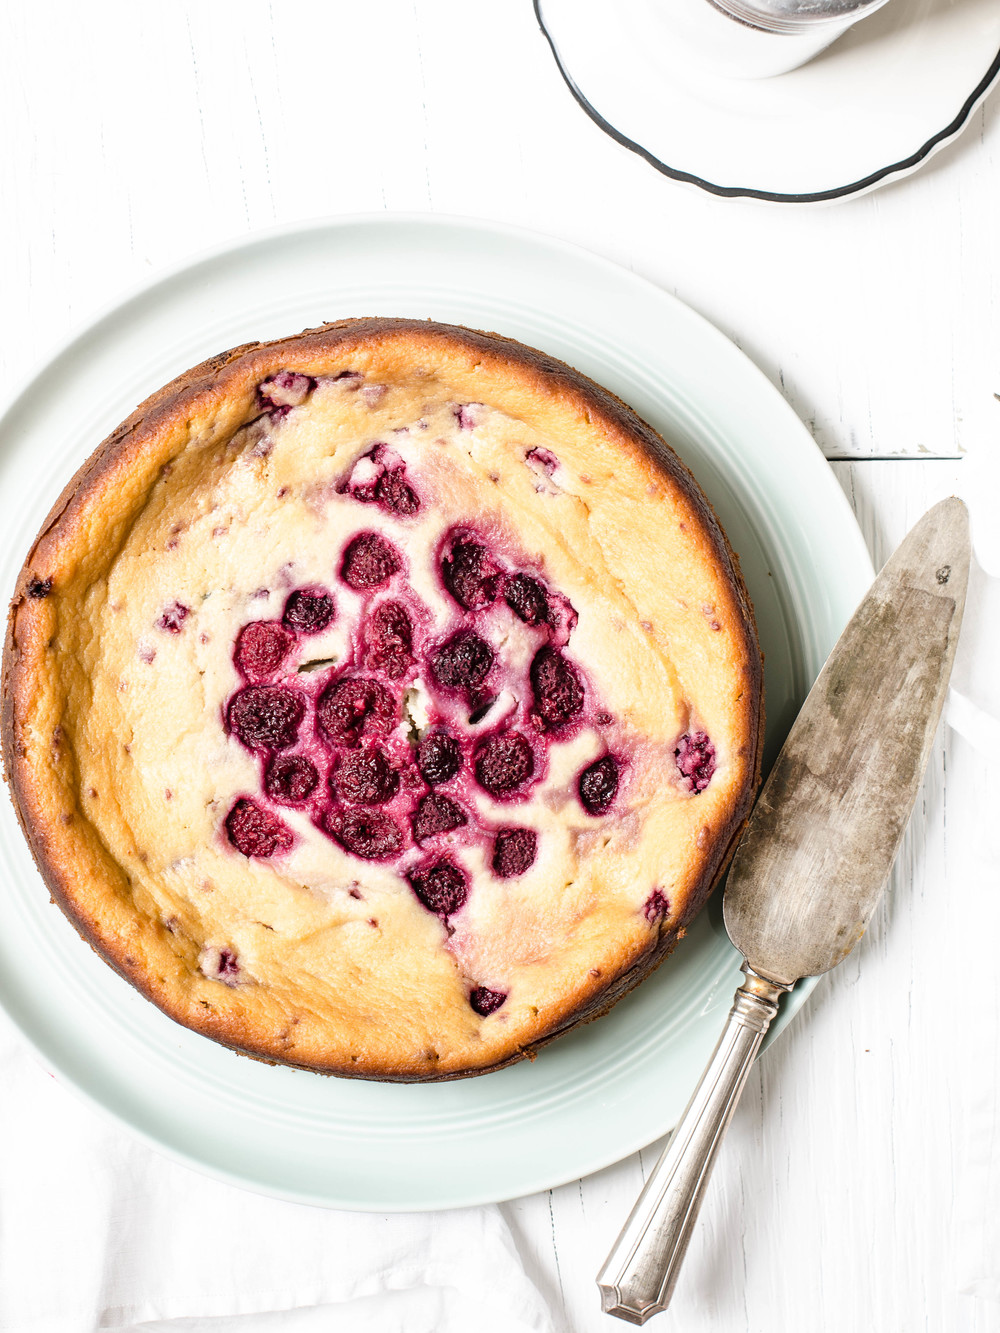 ROSE & IVY JOURNAL RASPBERRY RICOTTA CAKE